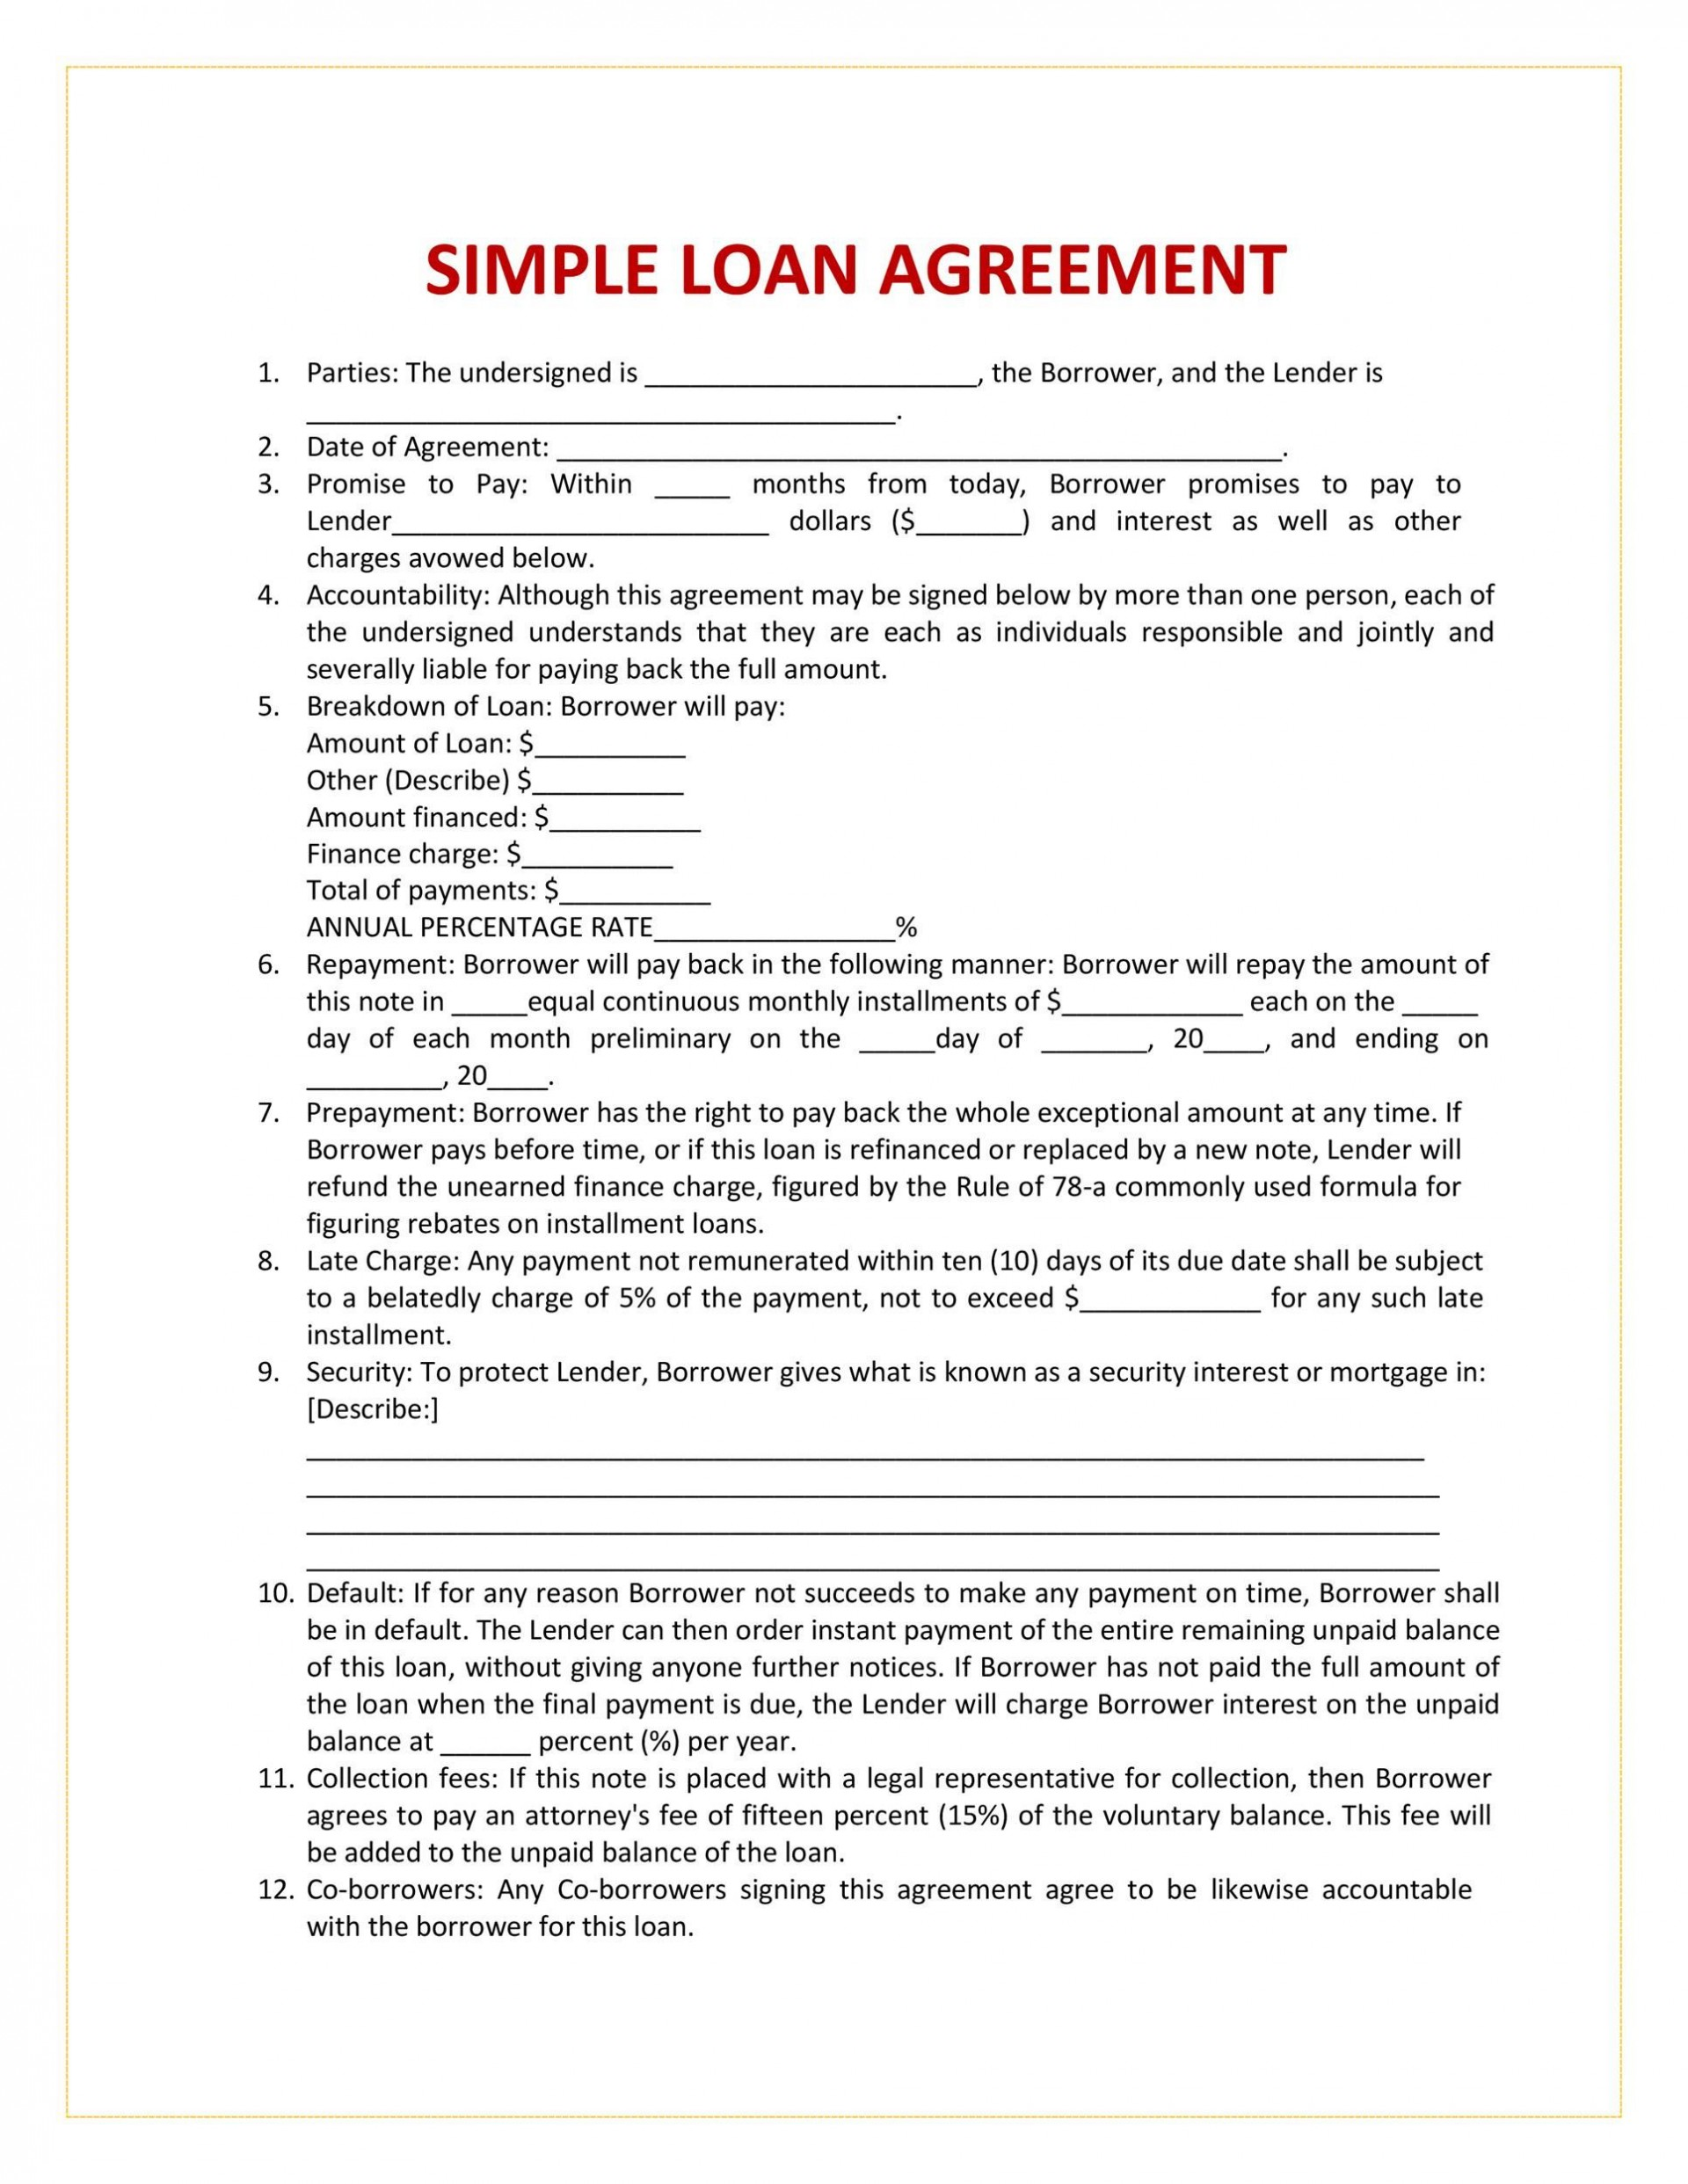 005 Sensational Family Loan Agreement Template Canada Highest Quality 1920